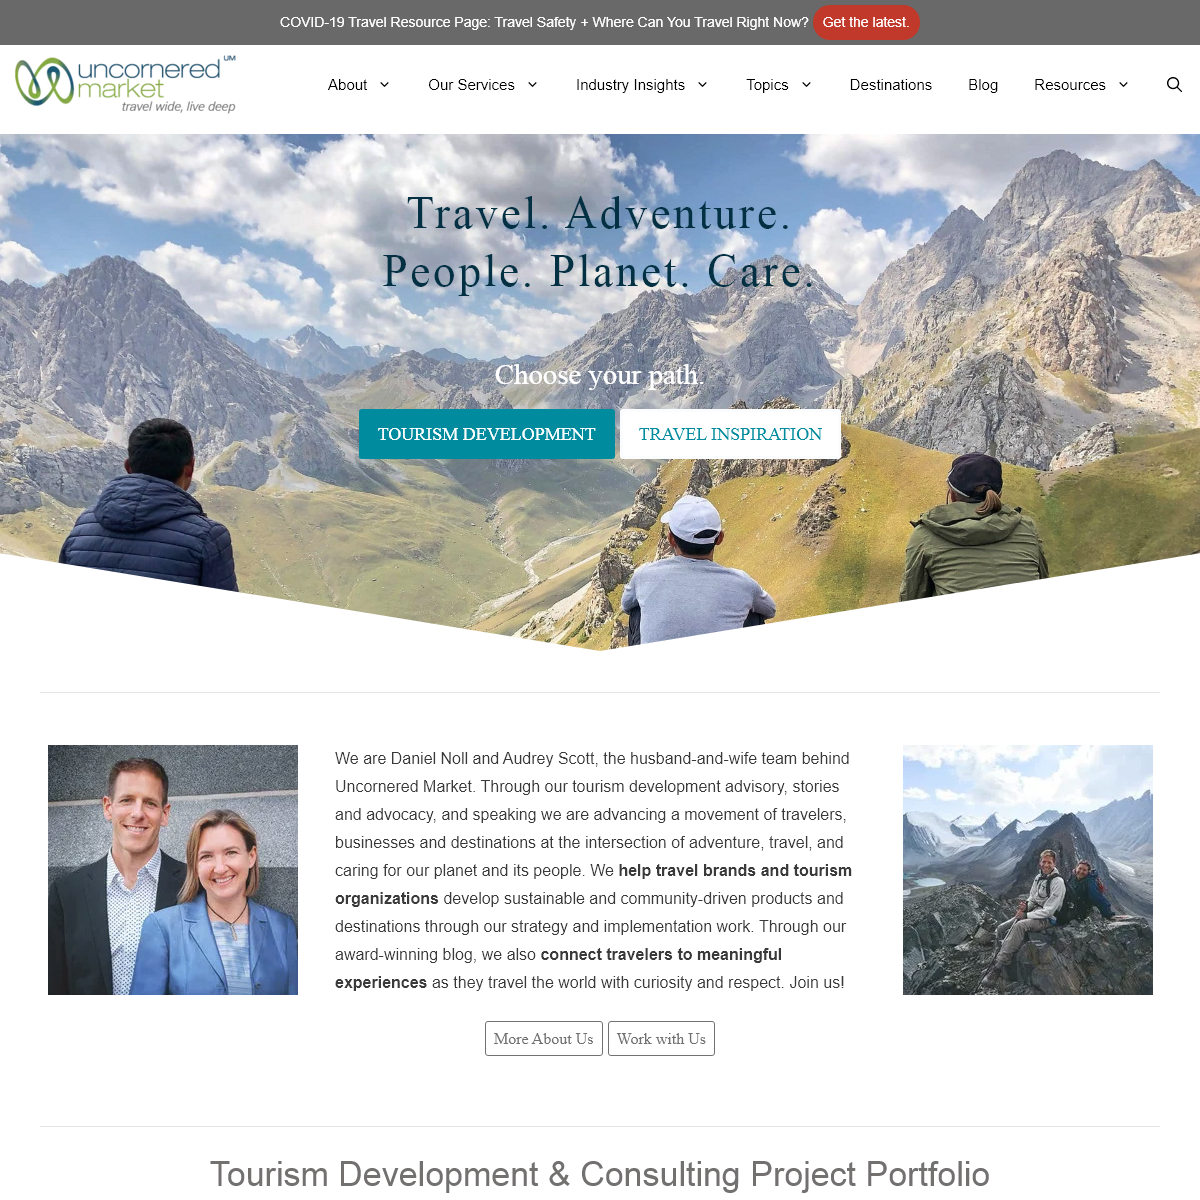 Uncornered Market - Travel That Cares for Our Planet and Its People